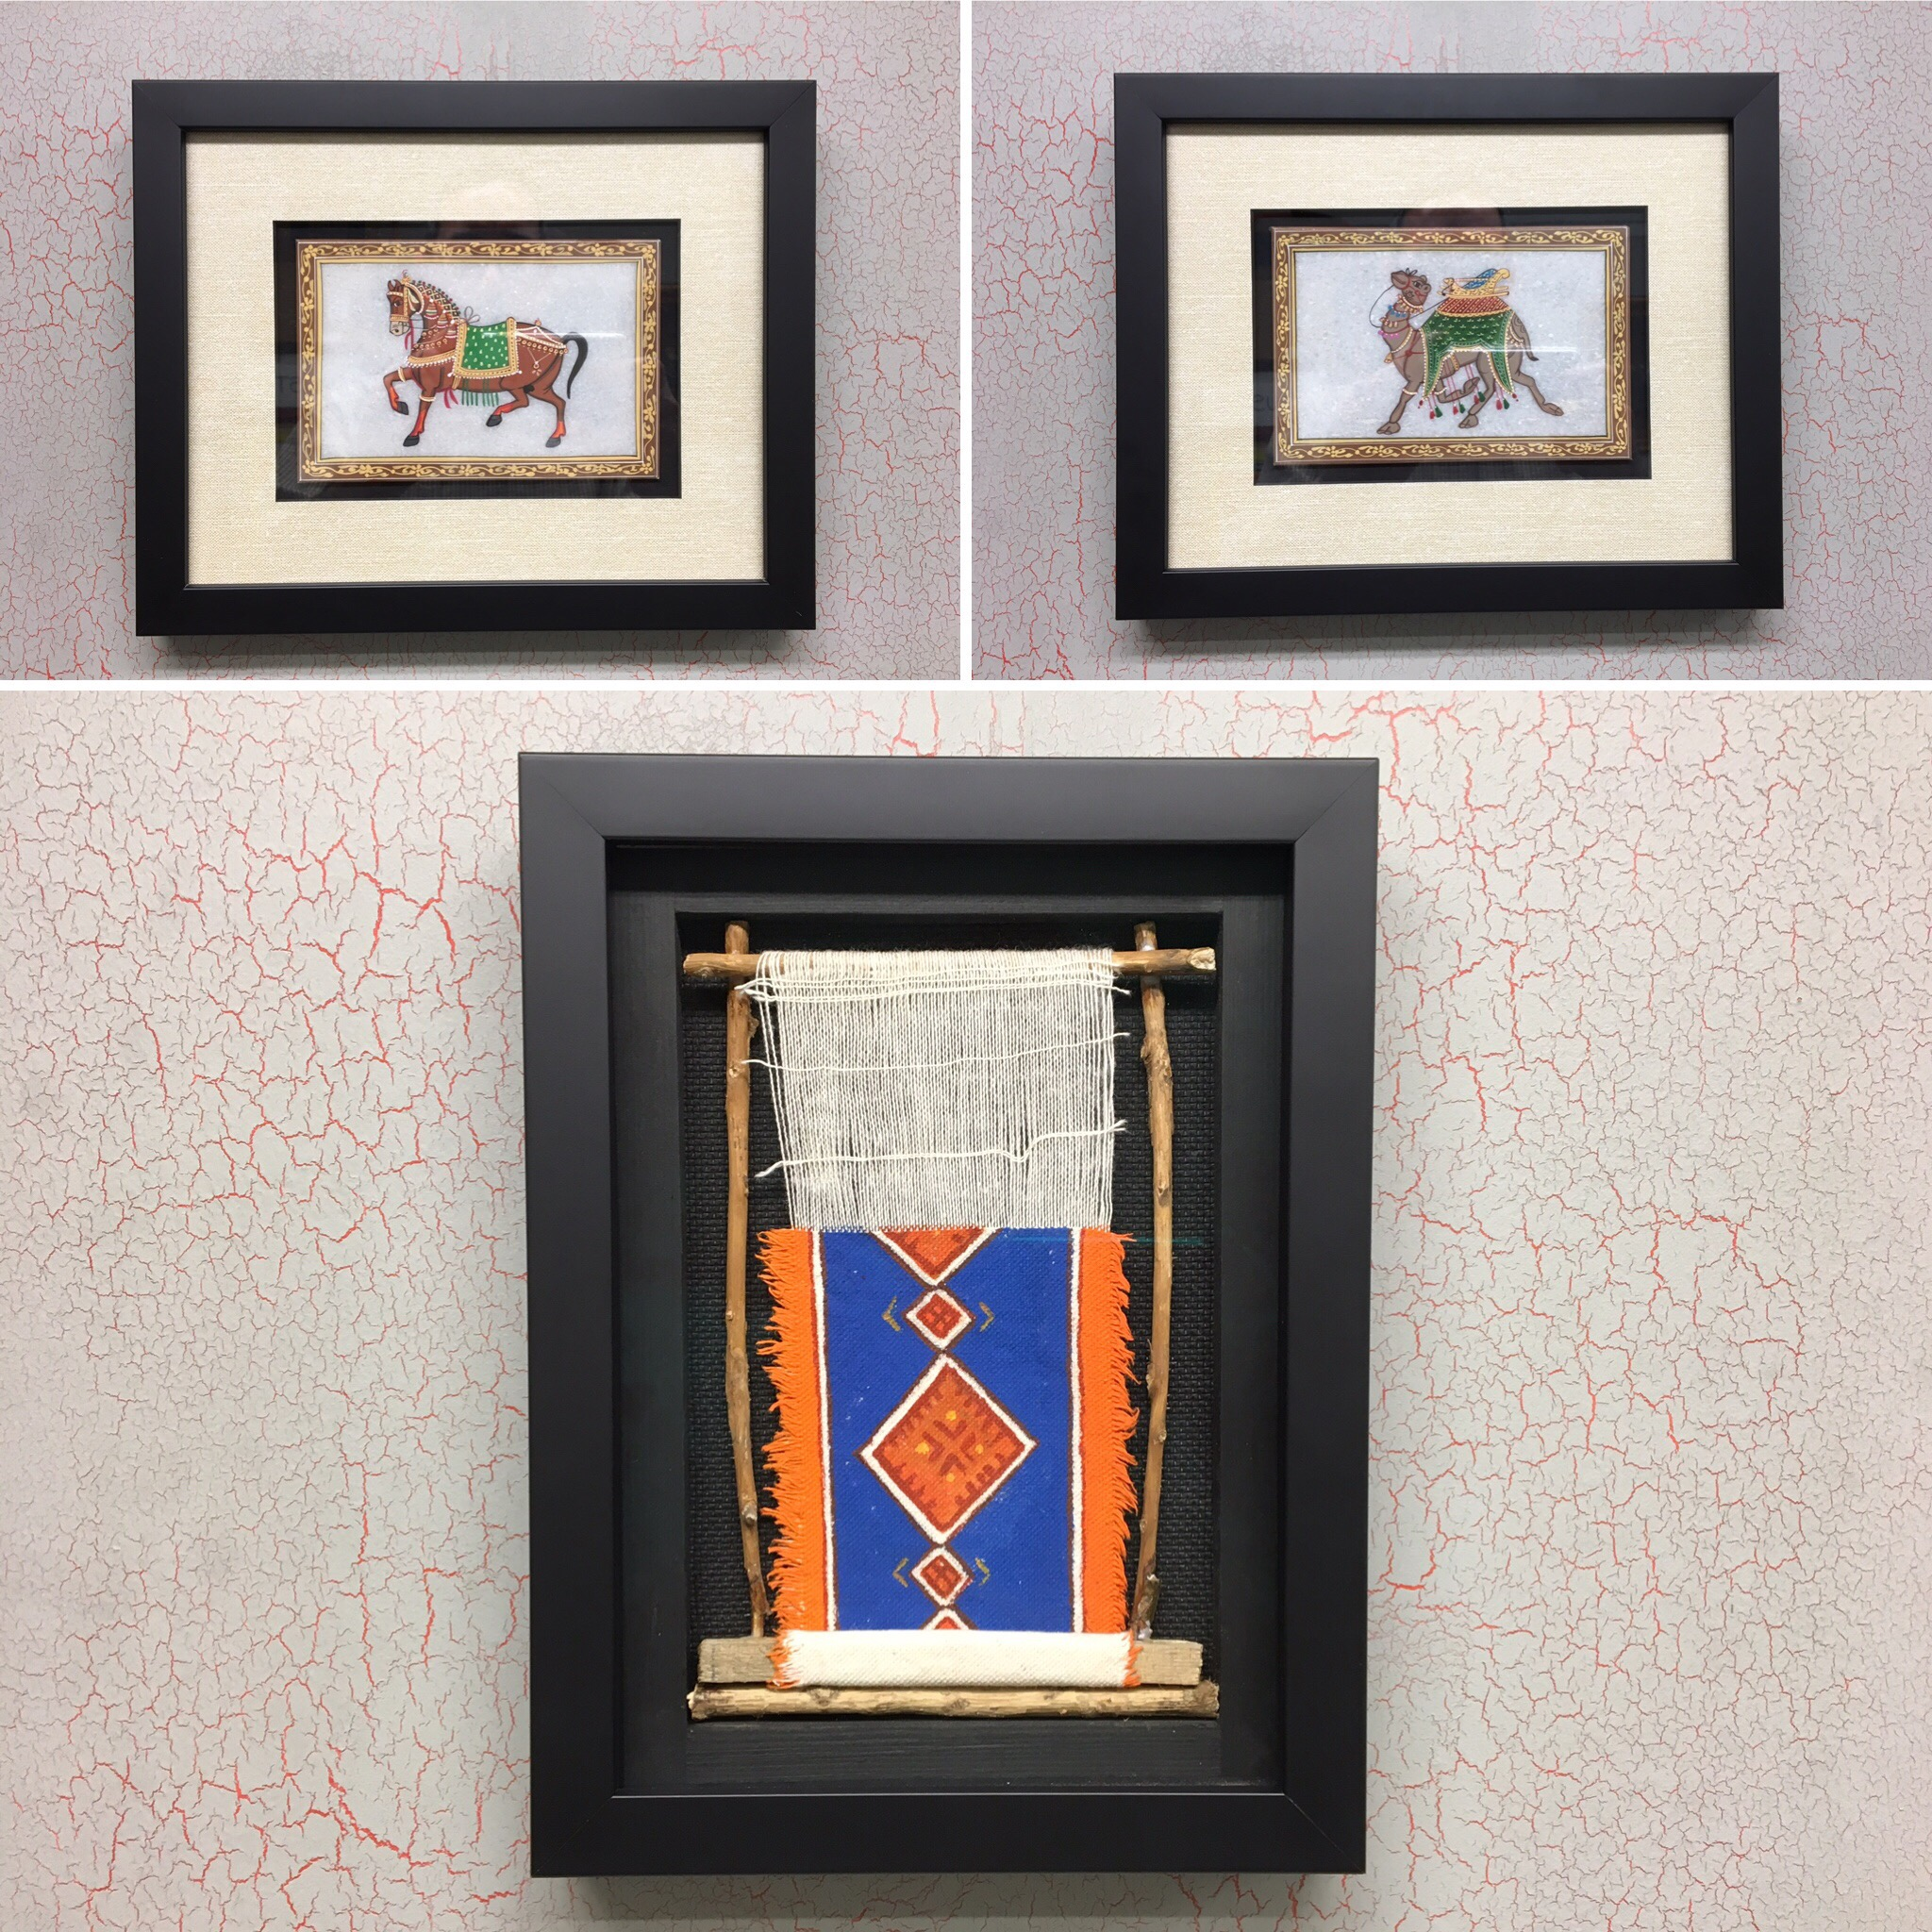 Some Moroccan Treasures - Have YOUR Momentos Custom Framed to SHARE and ENJOY